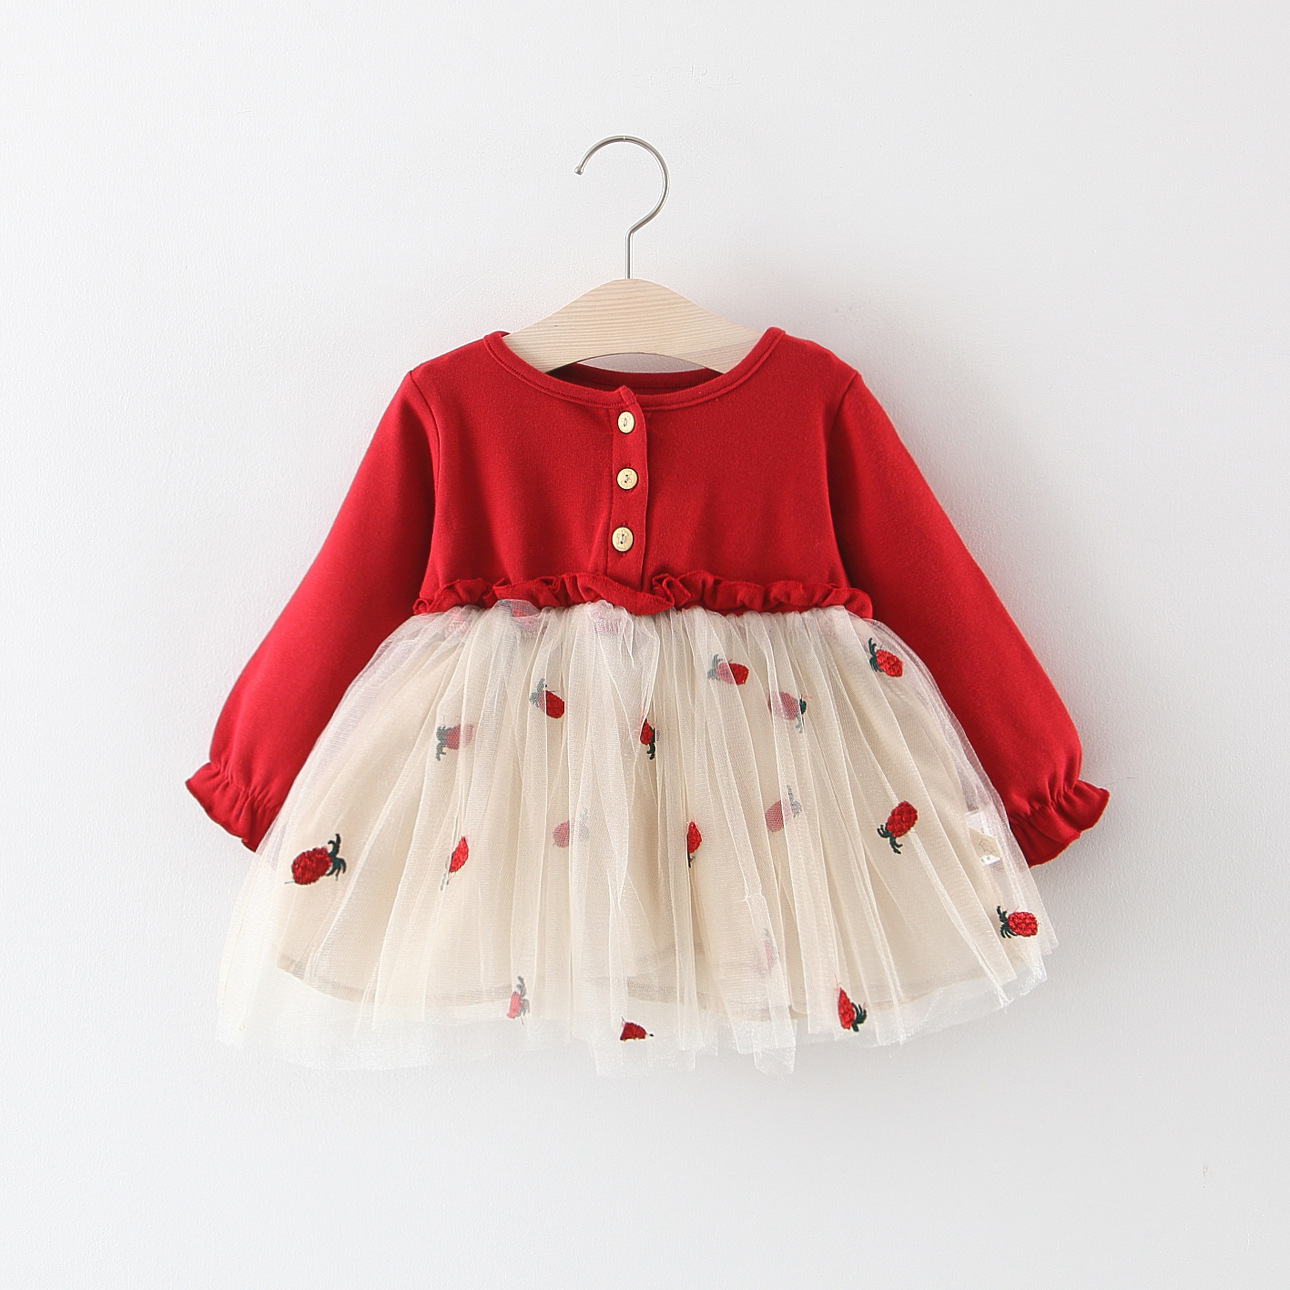 HAPPYMA Hi Im New Here Baby Boy Girl Outfits Red Plaid Long Sleeve 3Pcs Newborn Infant Clothes Set